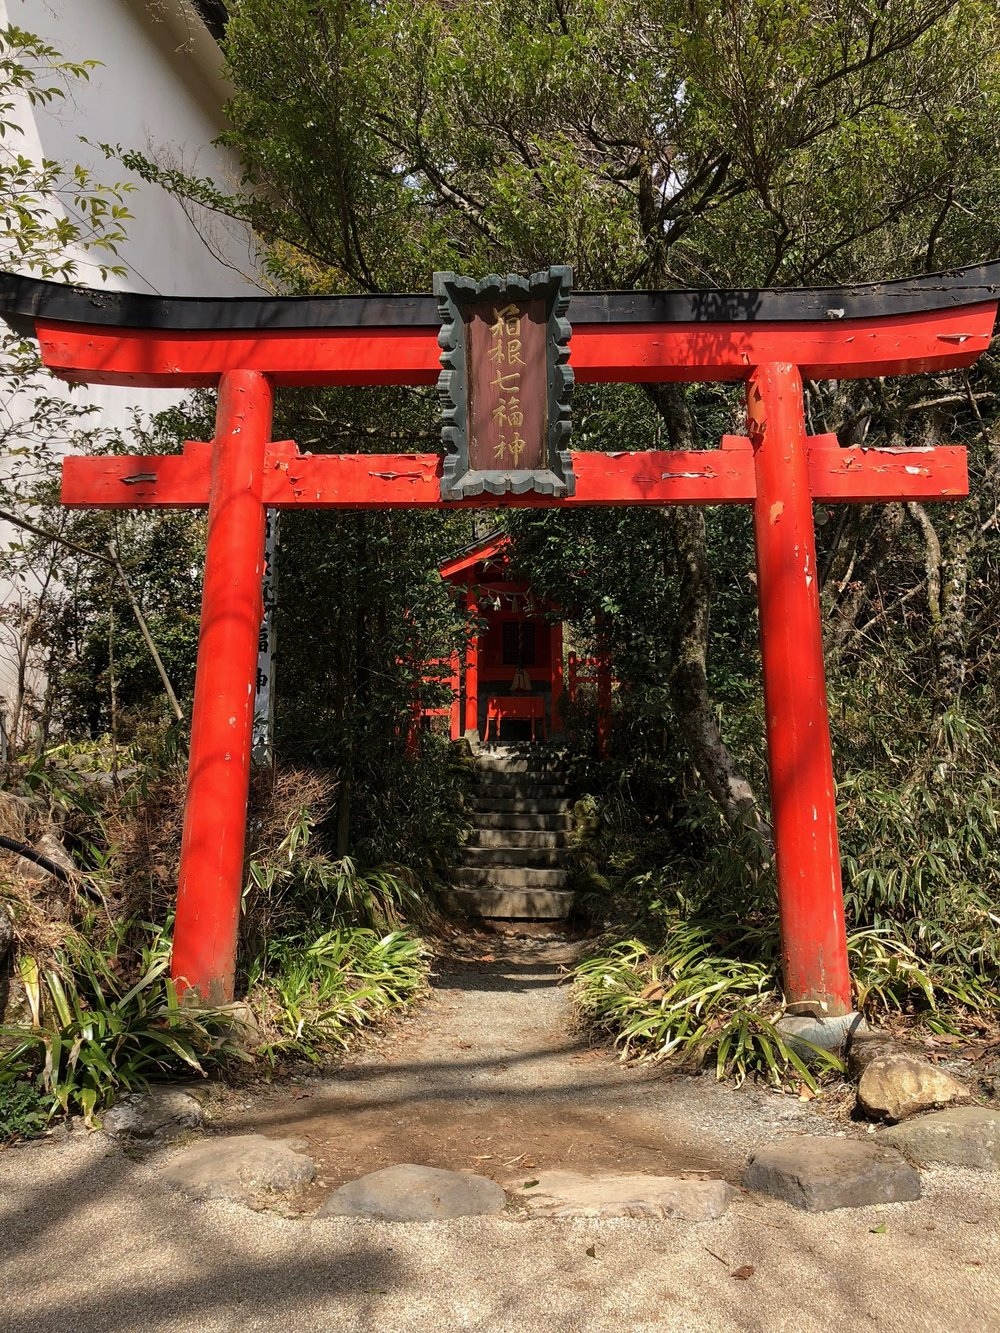 Most shrines have partially-hidden mini shrines sprinkled across their grounds.